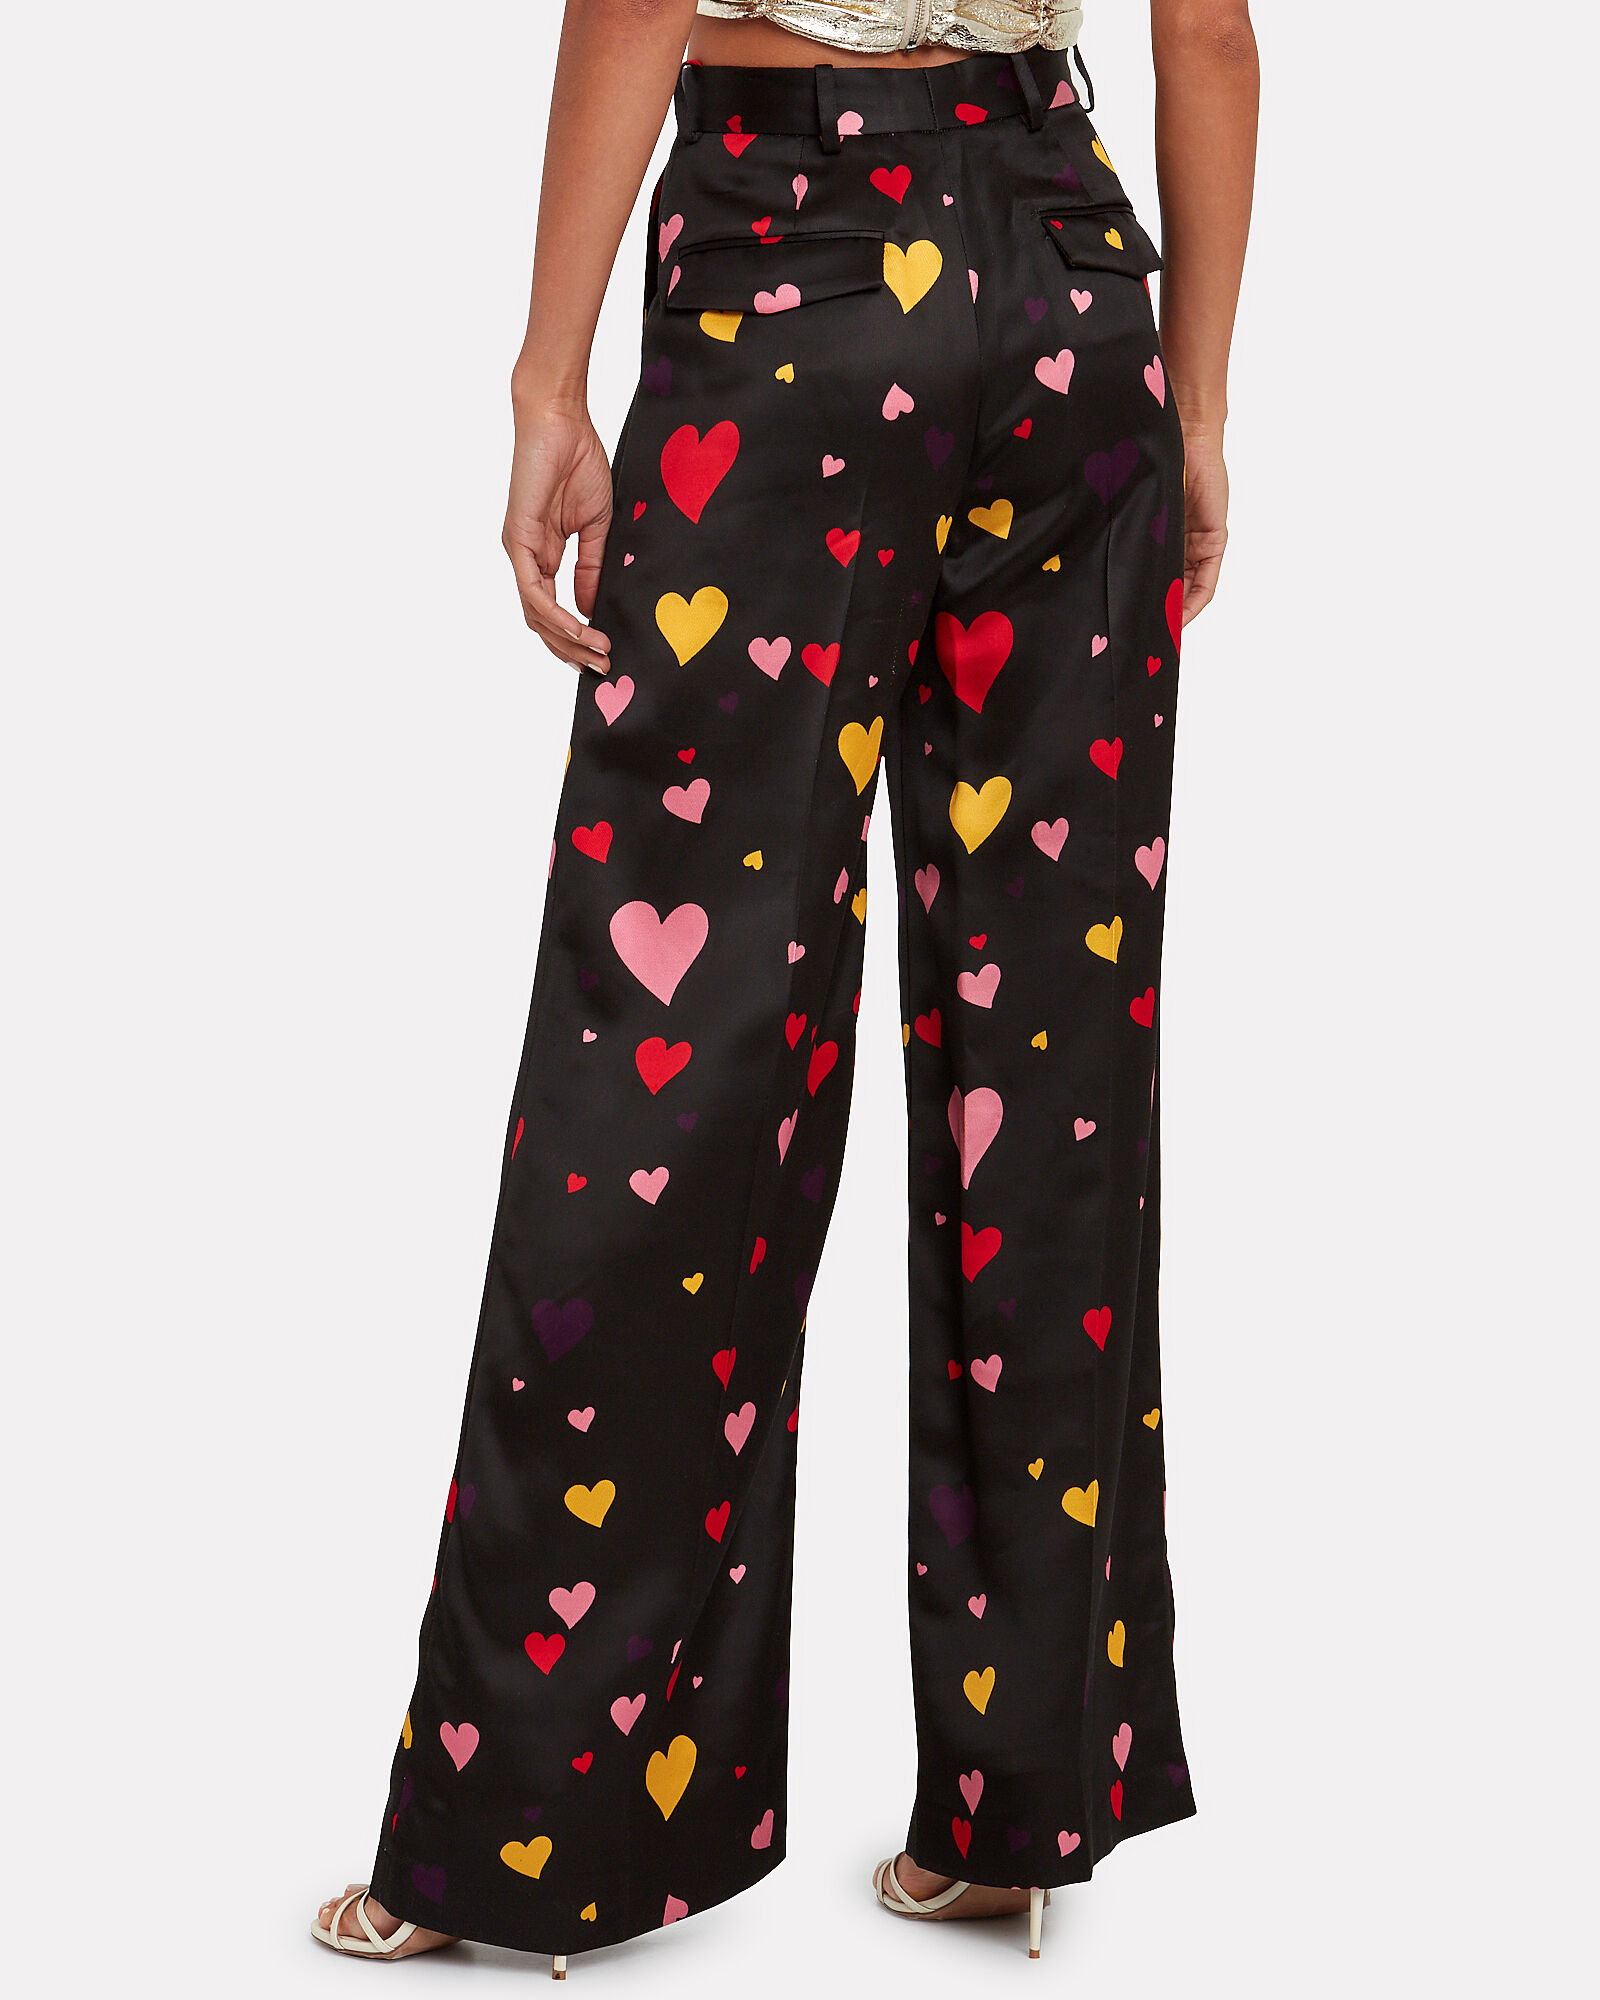 Peter Twill Palazzo Trousers, MULTI, hi-res